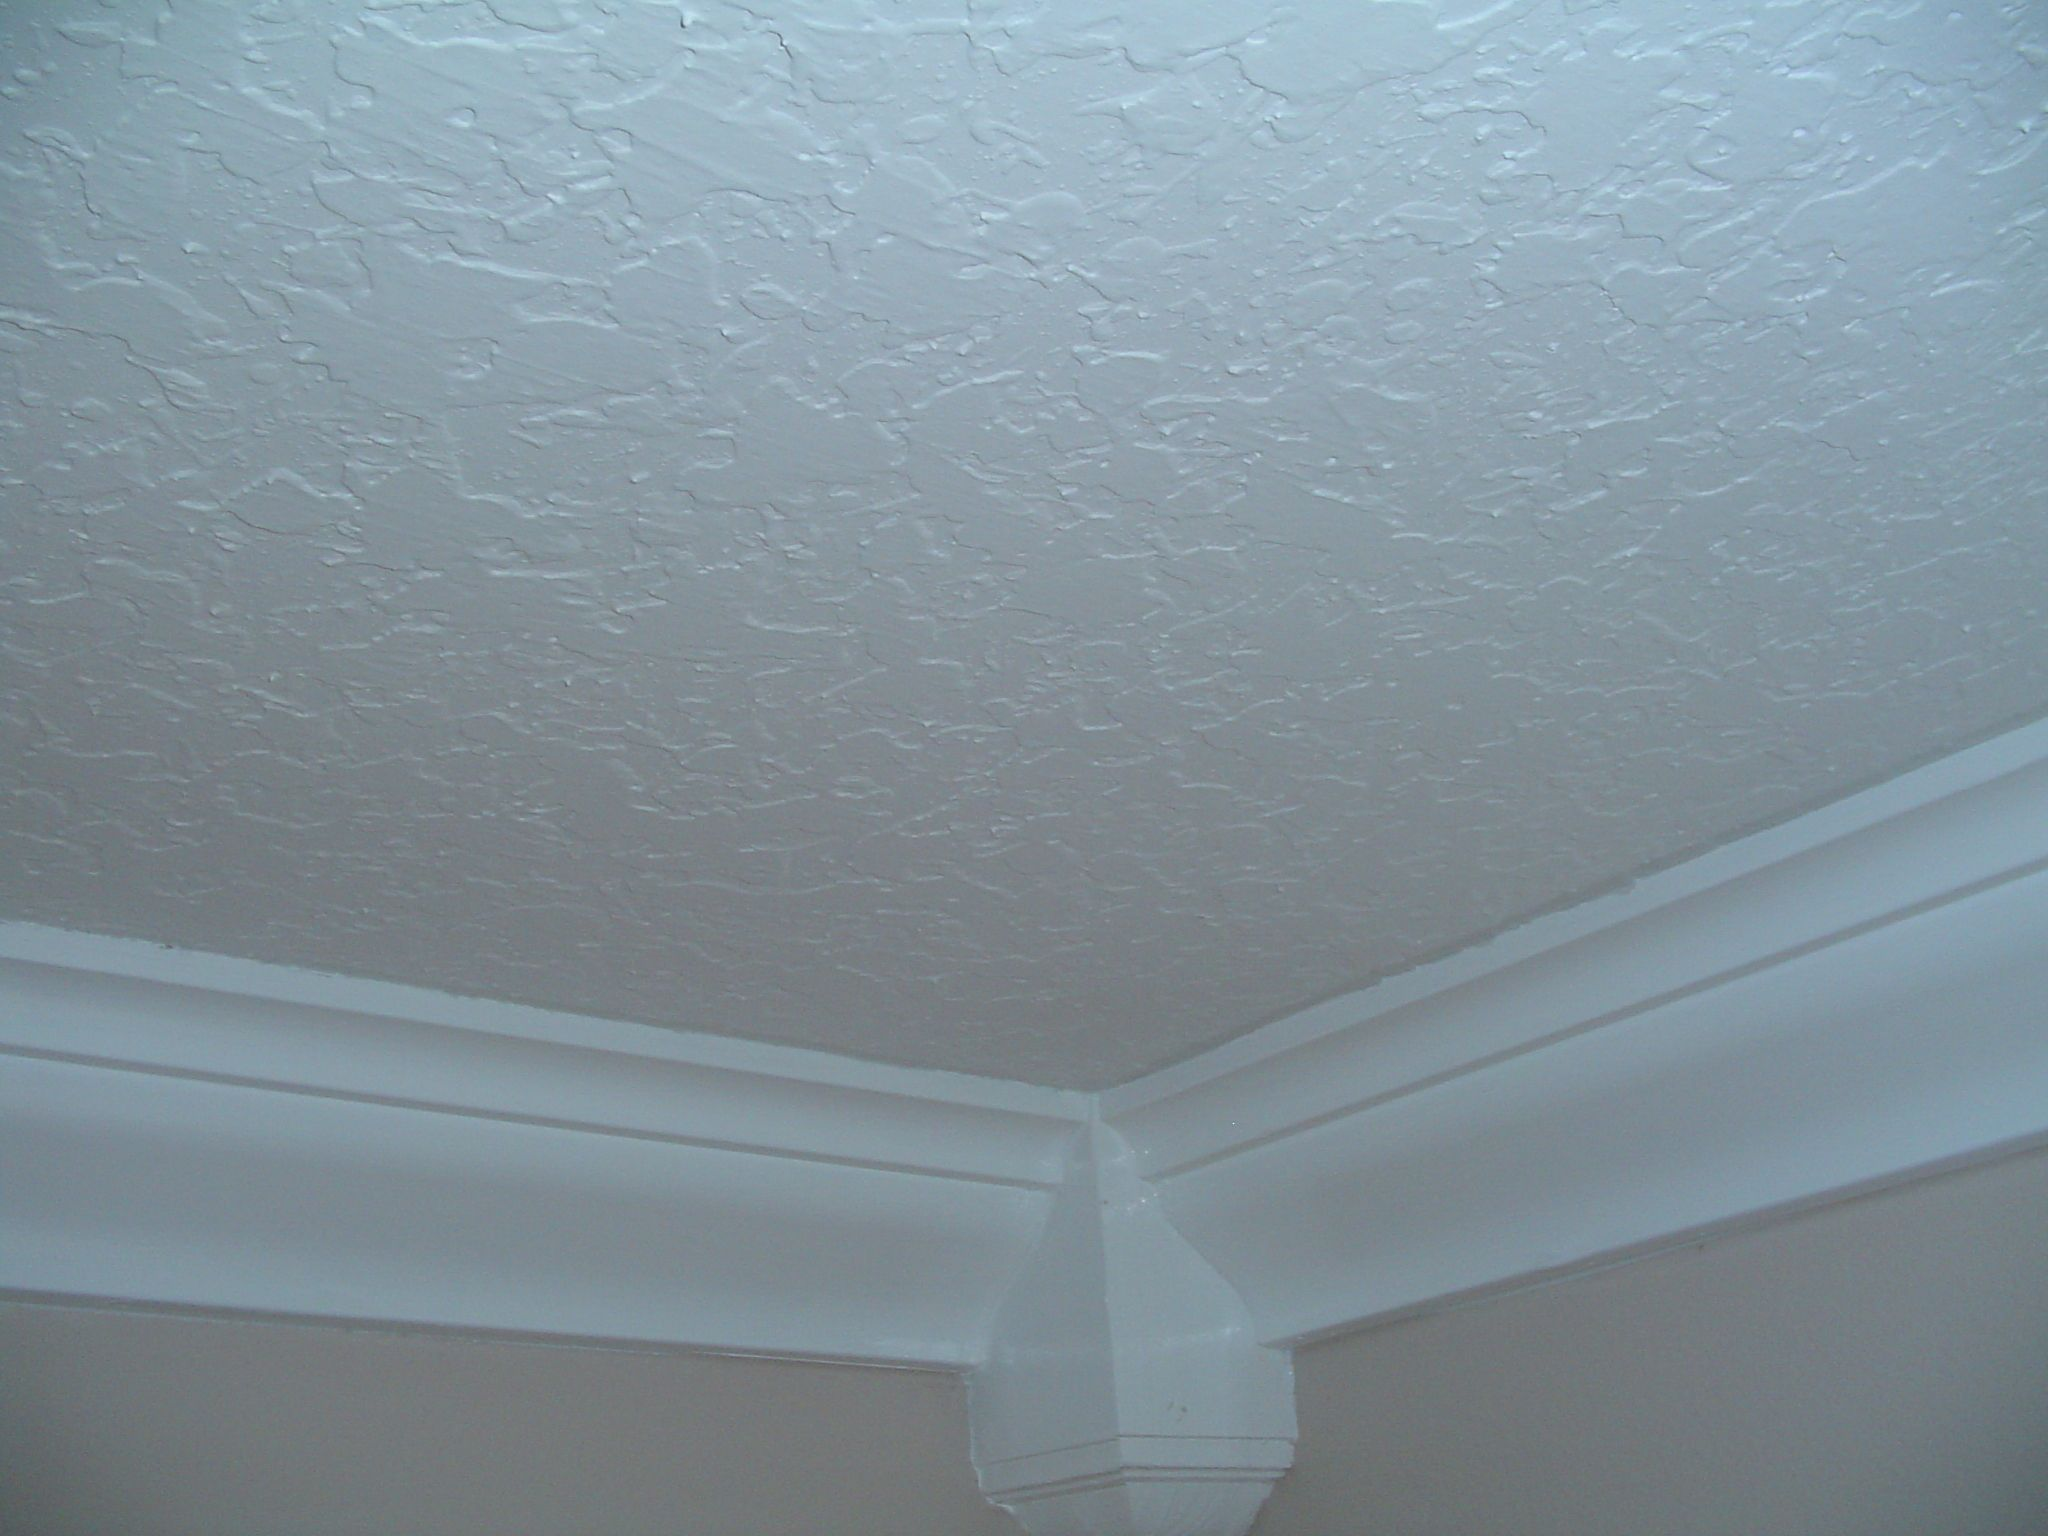 knockdown ceiling texture - spanish lace or mediterranean texture